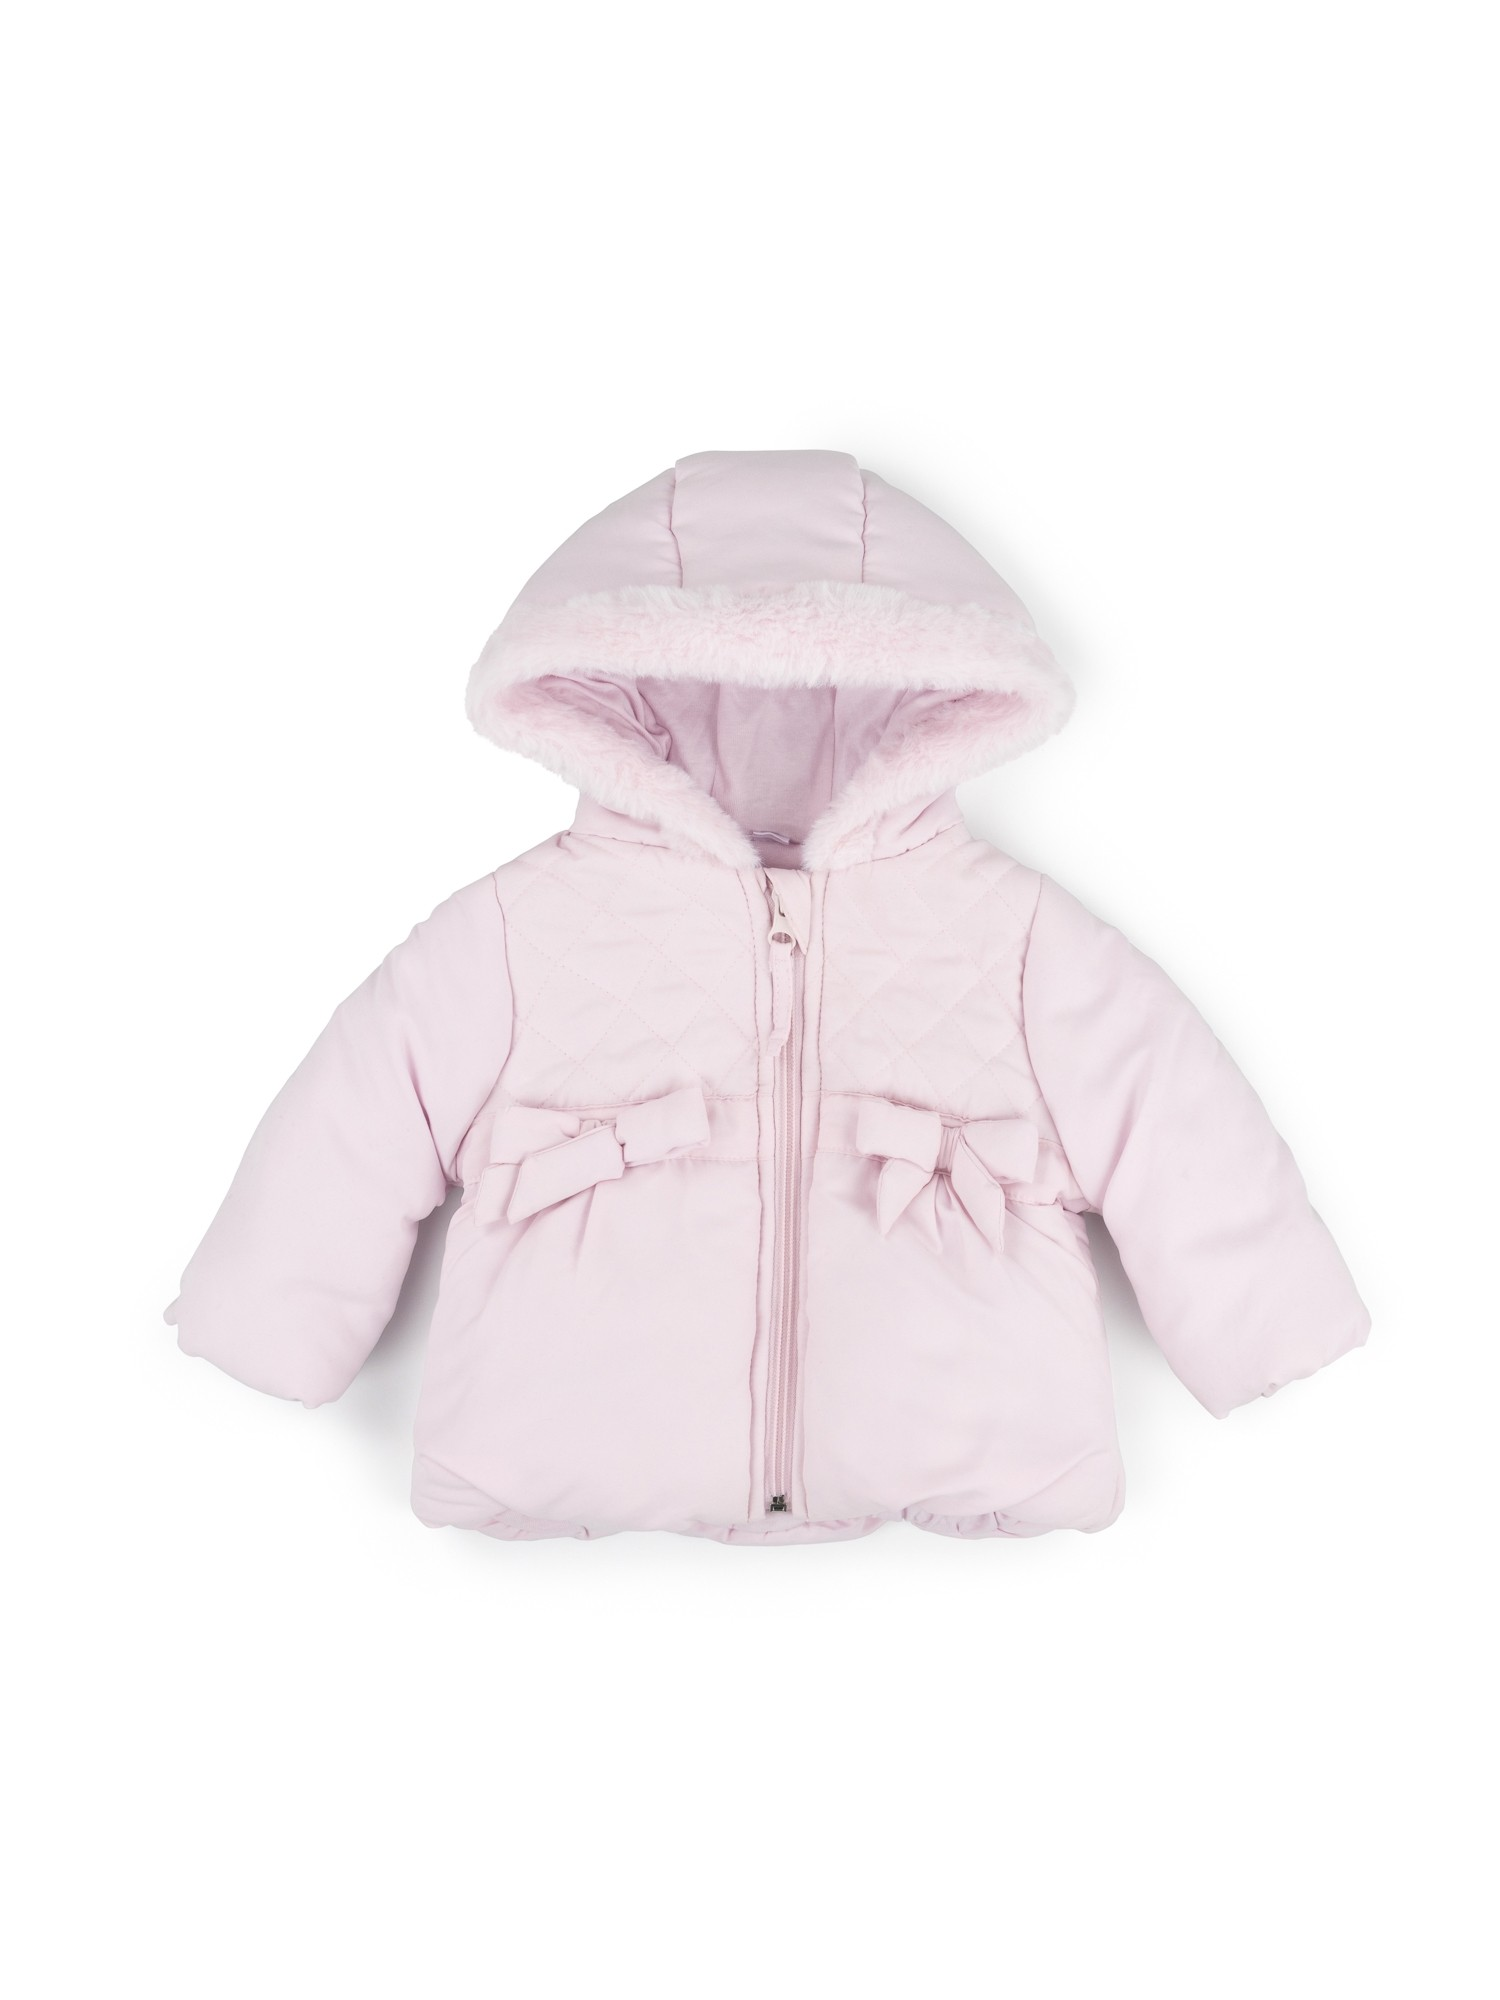 Rock a Bye Baby Boutique Baby Girls Padded Coat PACK OF 4